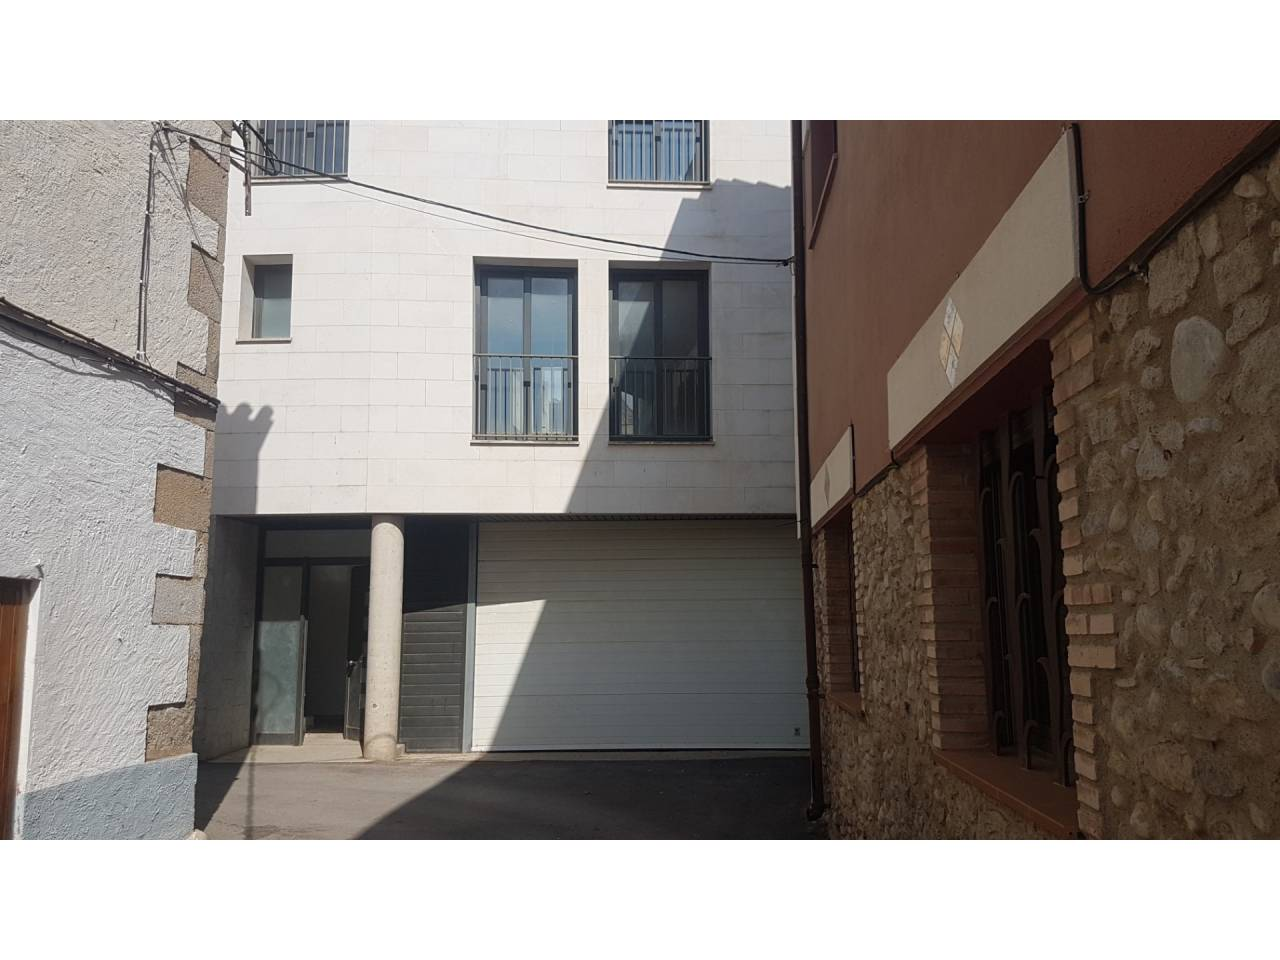 005047 - Townhouse for sale in Sant Pere Pescador